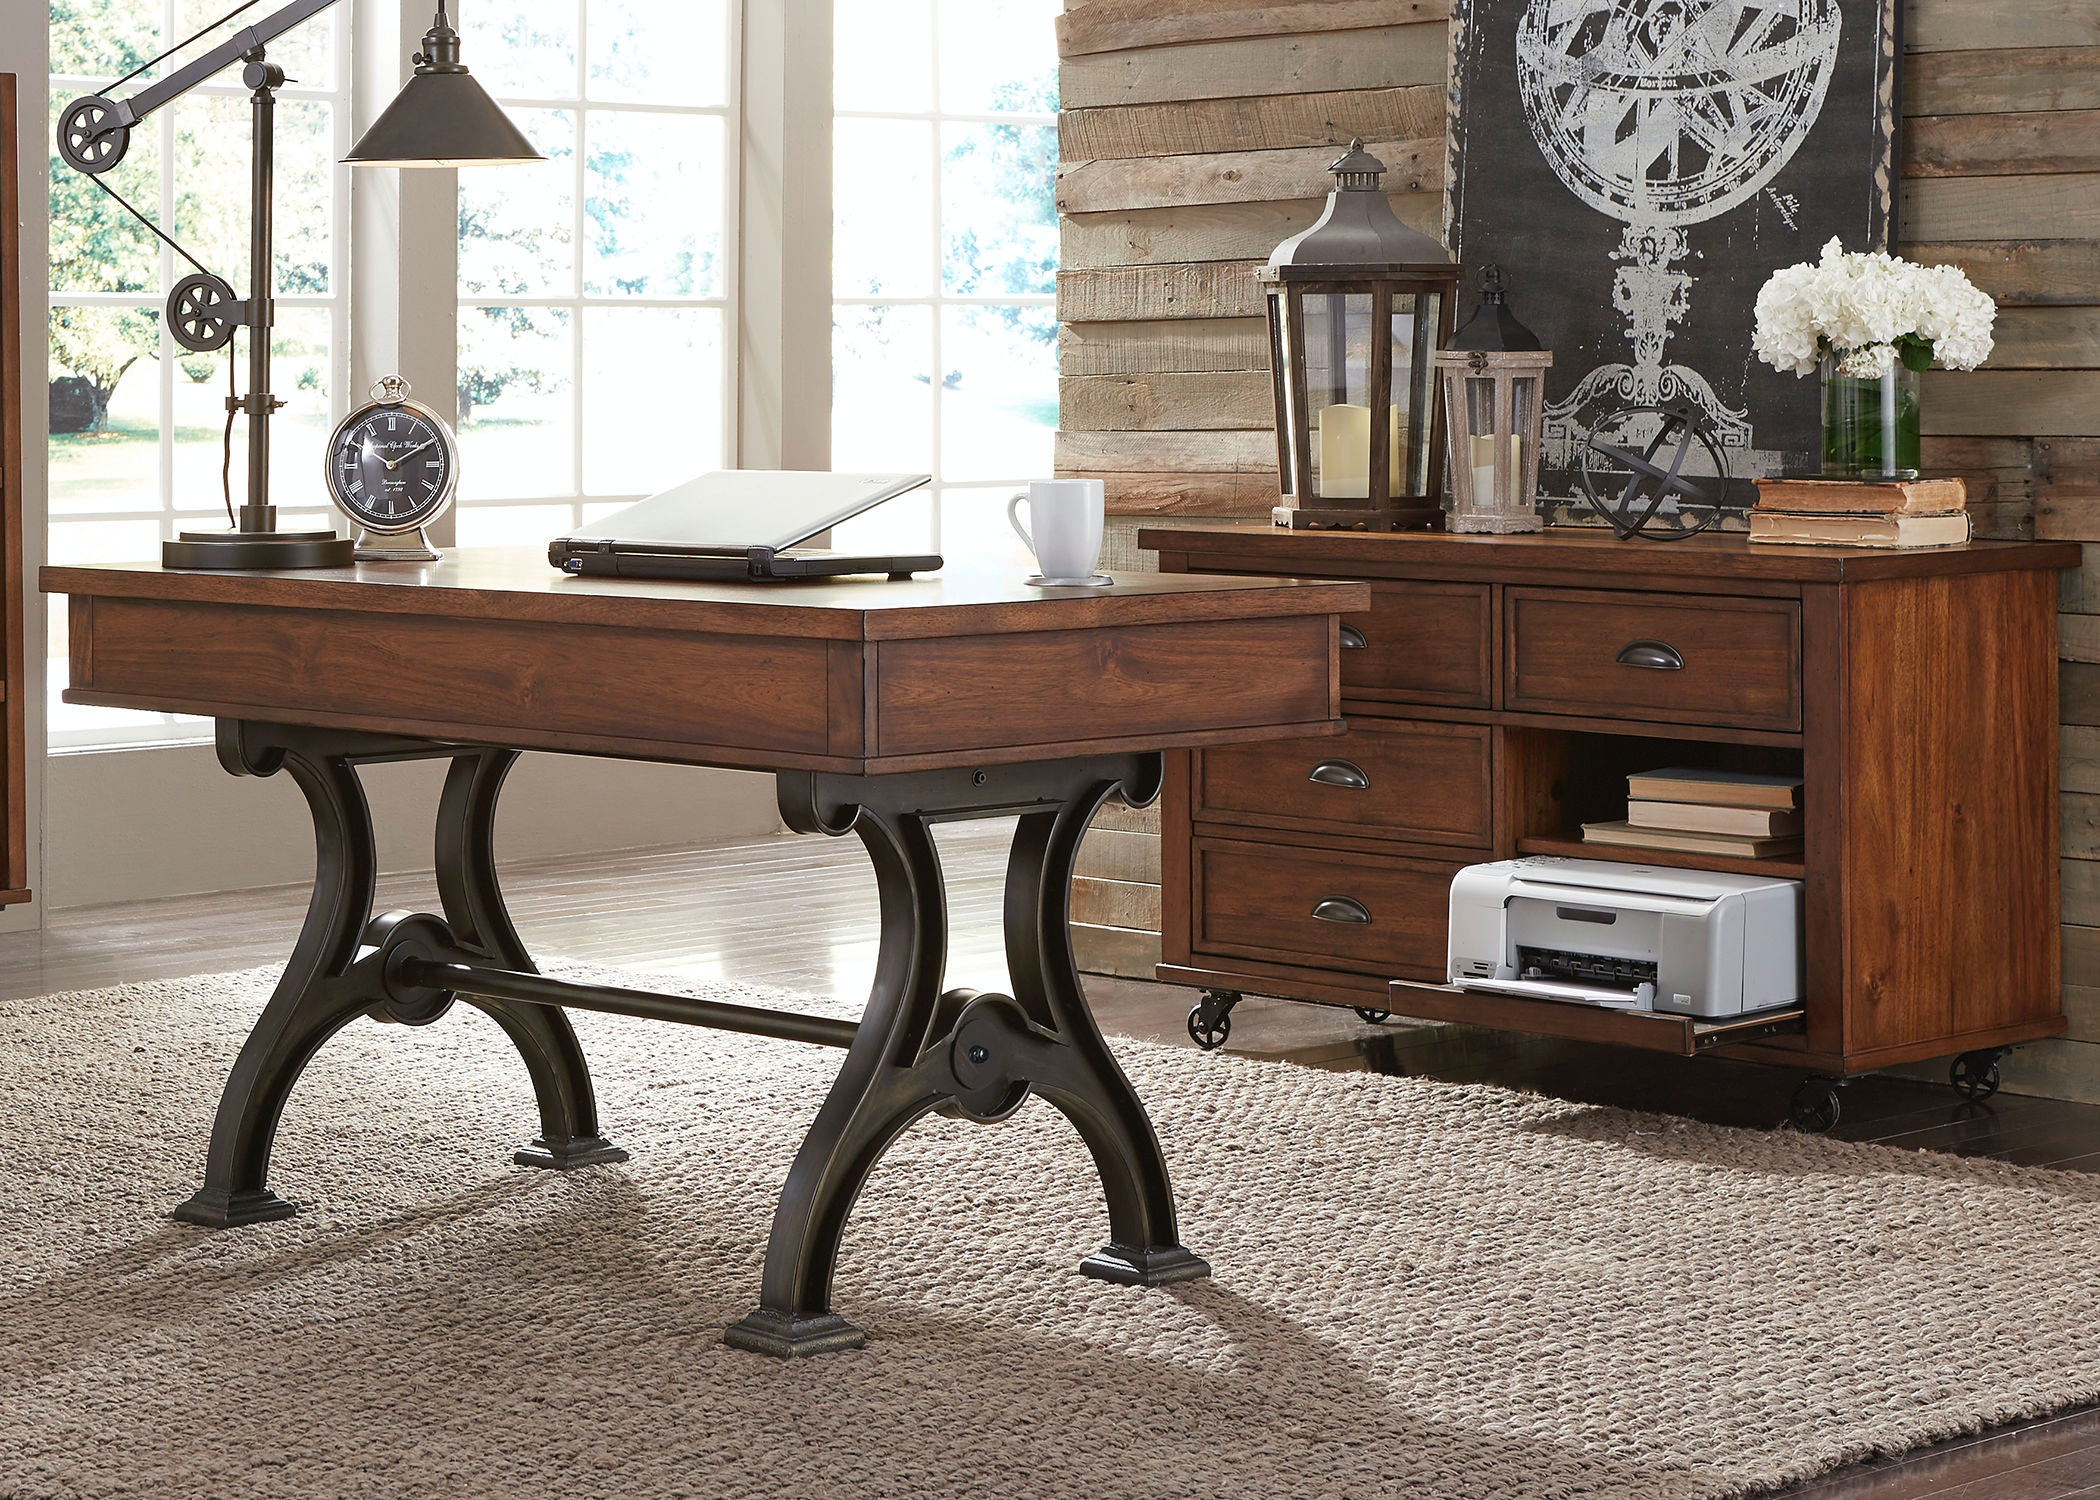 Nice Liberty Furniture Home Office Complete Desk 411 HO CDS   Smith Village Home  Furniture   Jacobus And York, PA